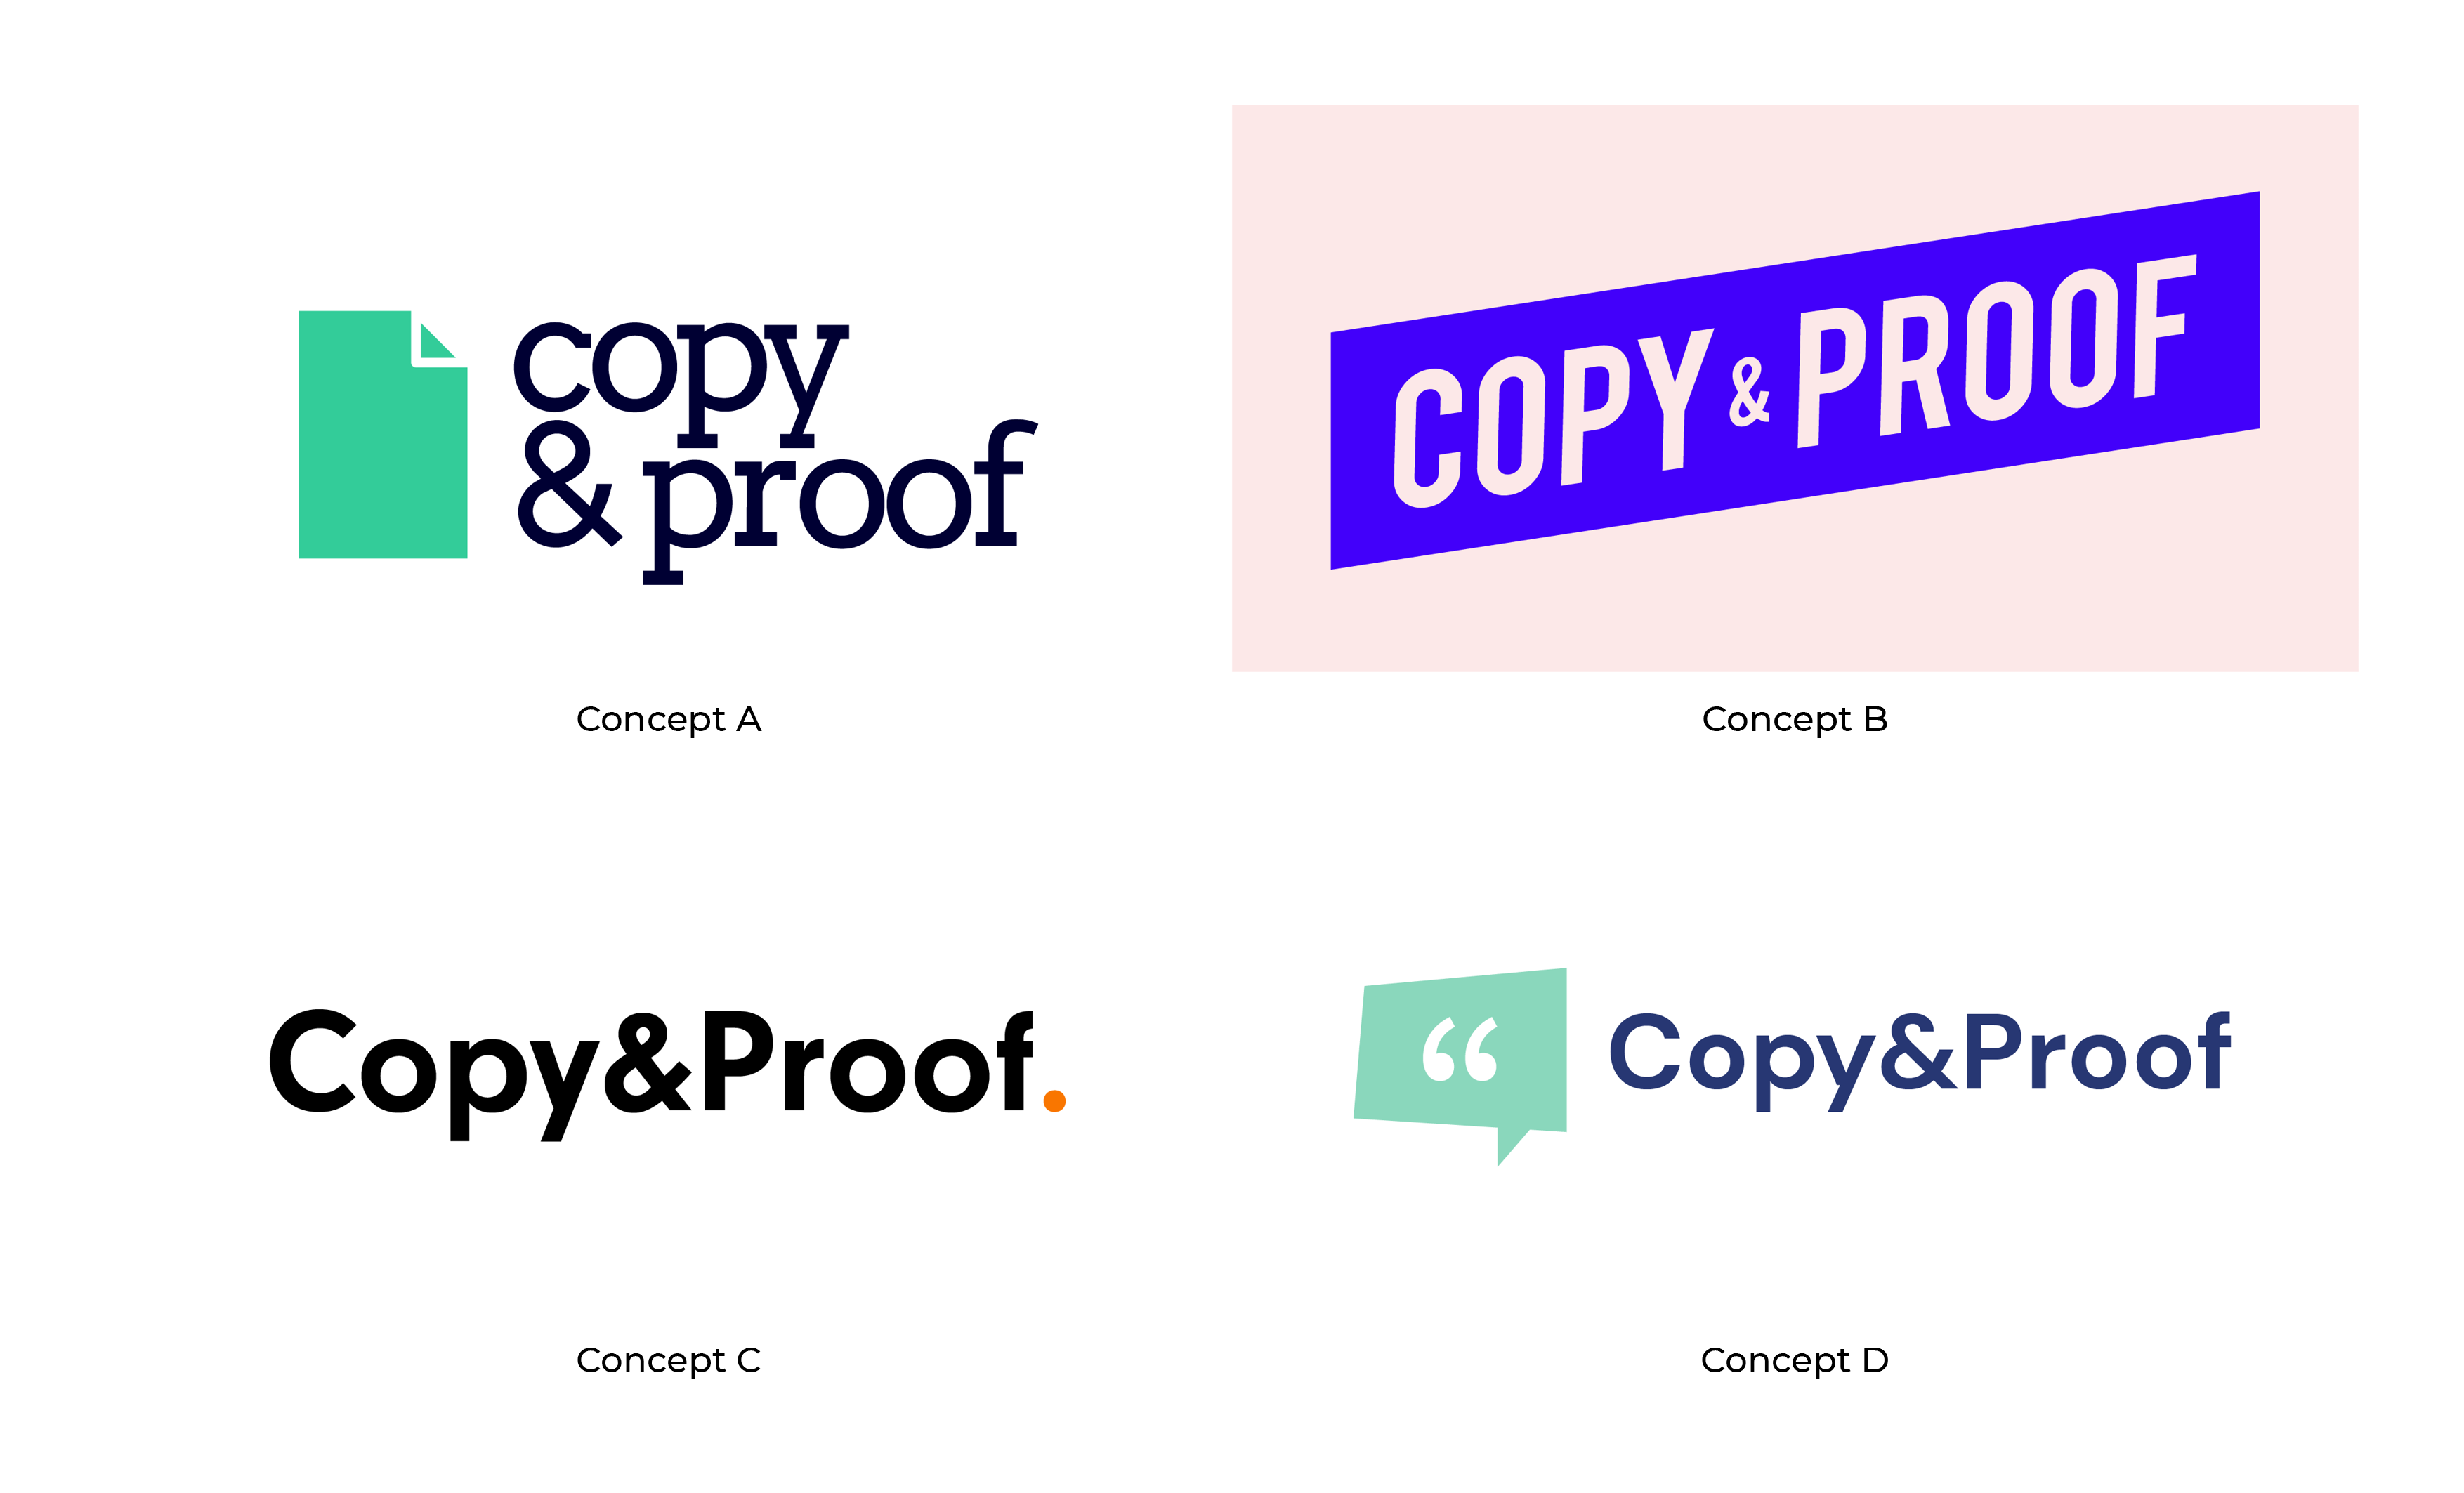 Four different designs of the Copy and Proof logo